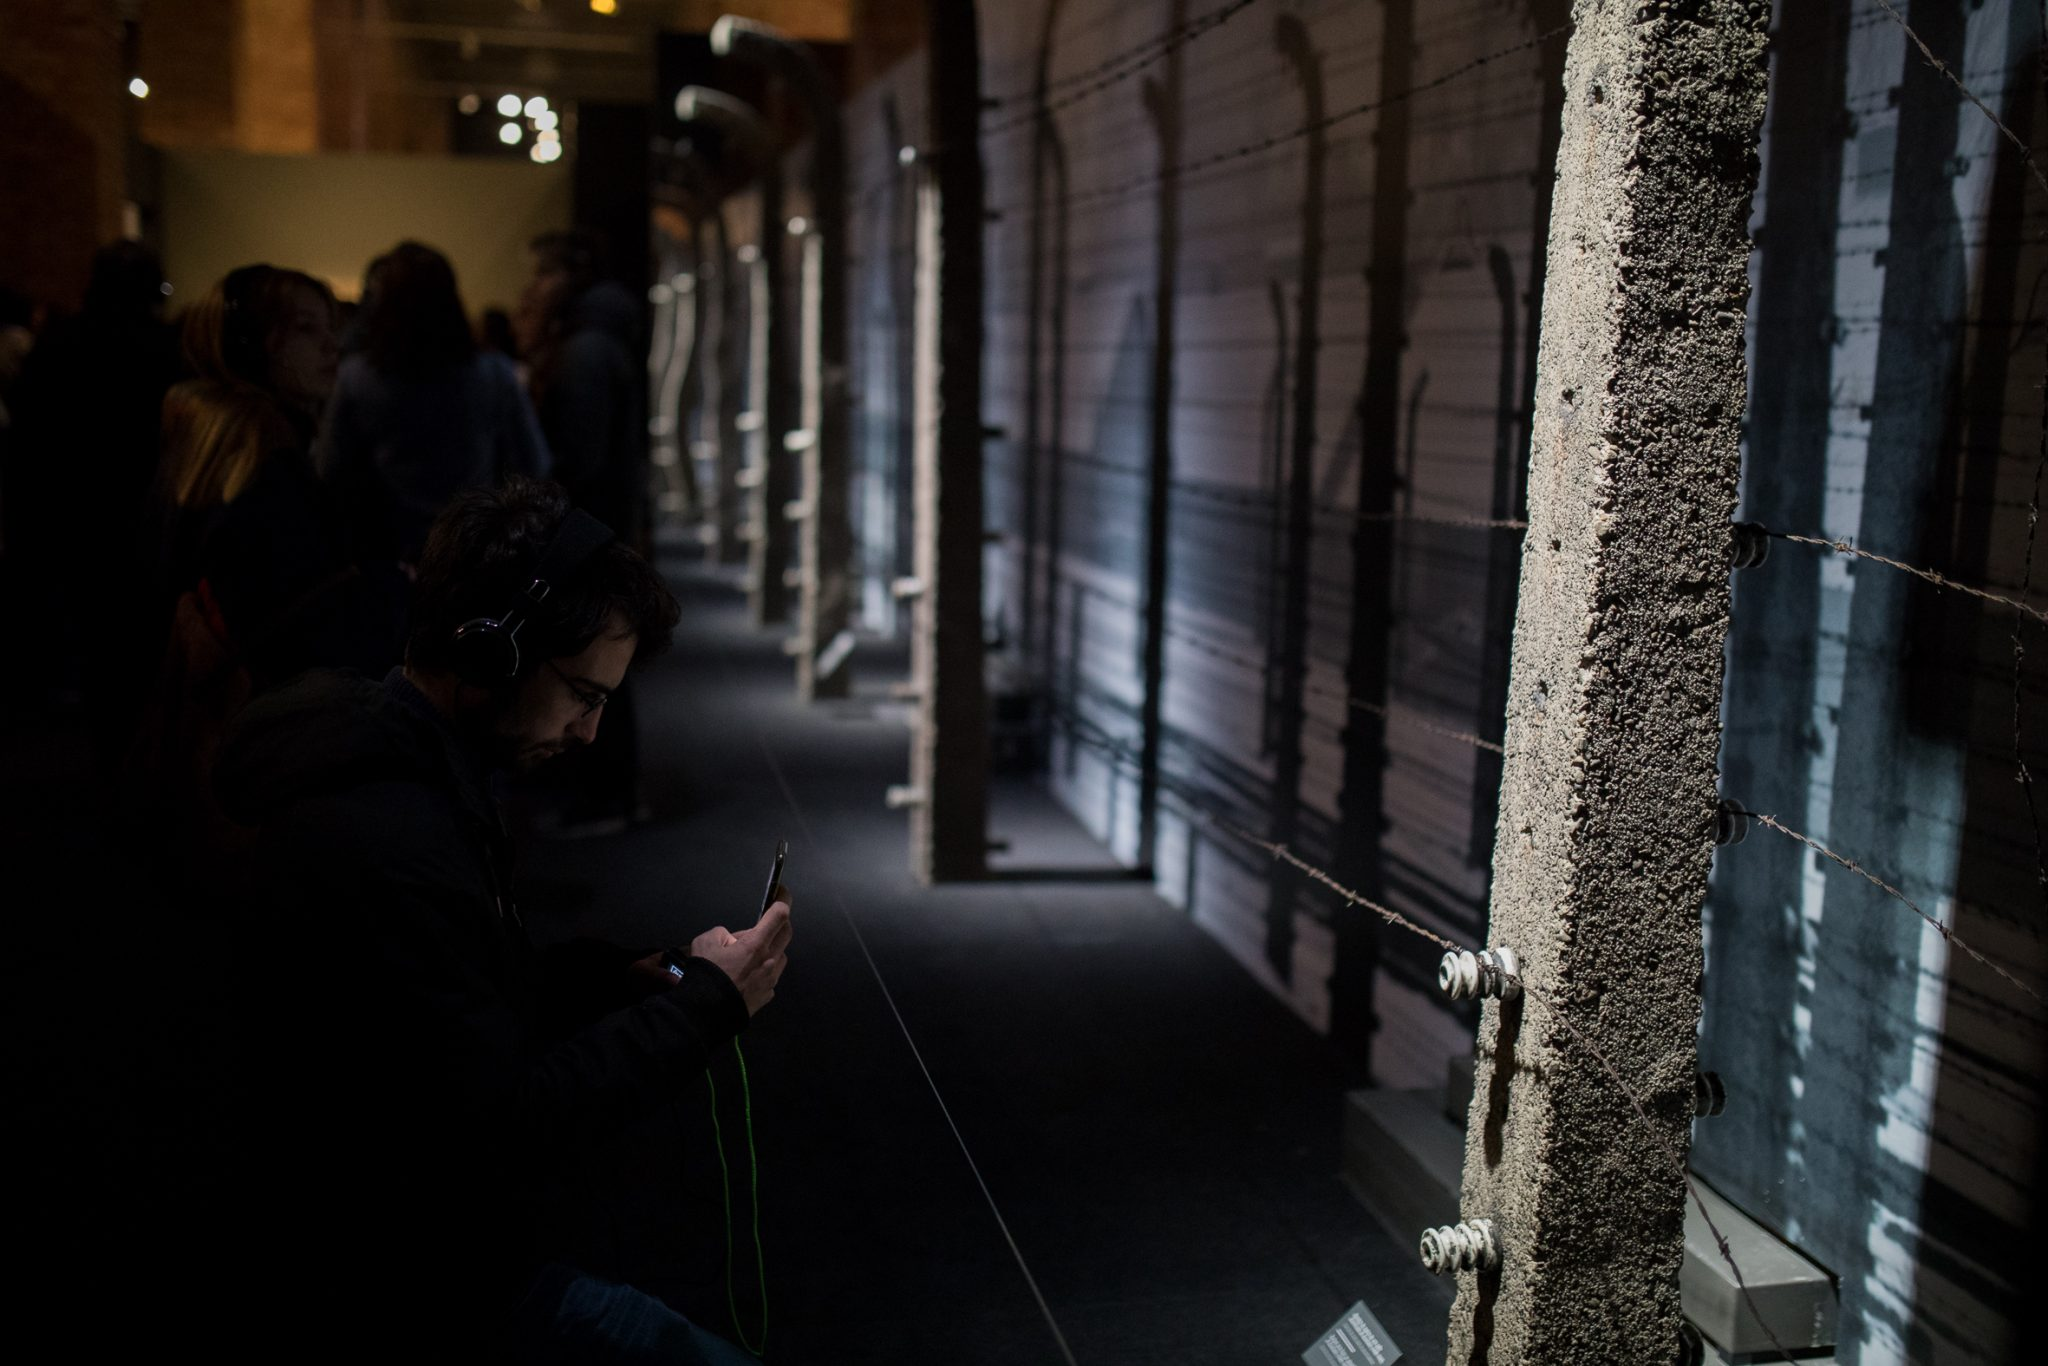 Auschwitz. Not long ago. Not far away - Traveling Exhibit